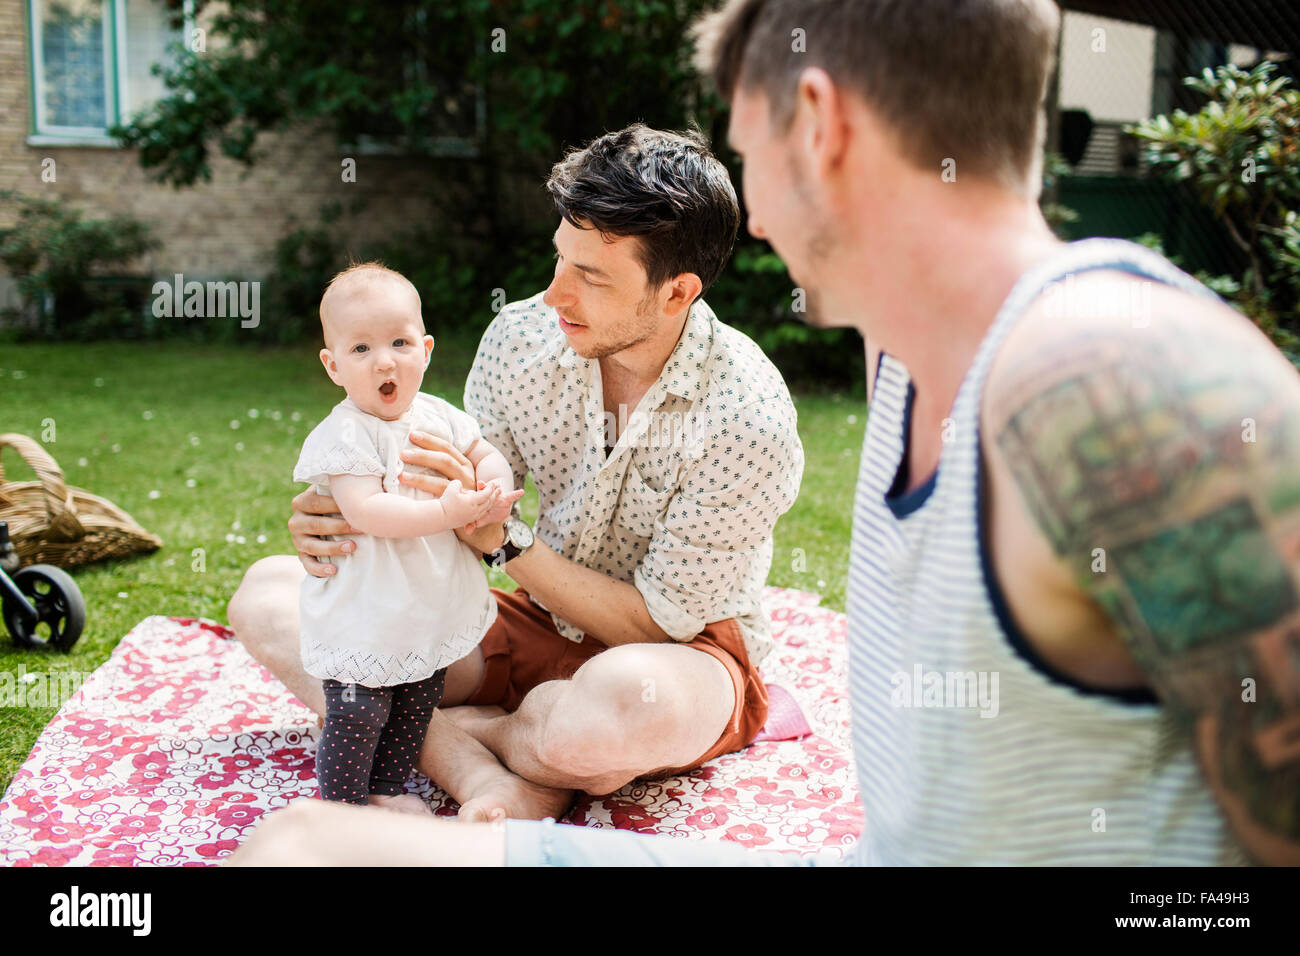 Gay couple looking at baby girl while sitting in yard - Stock Image